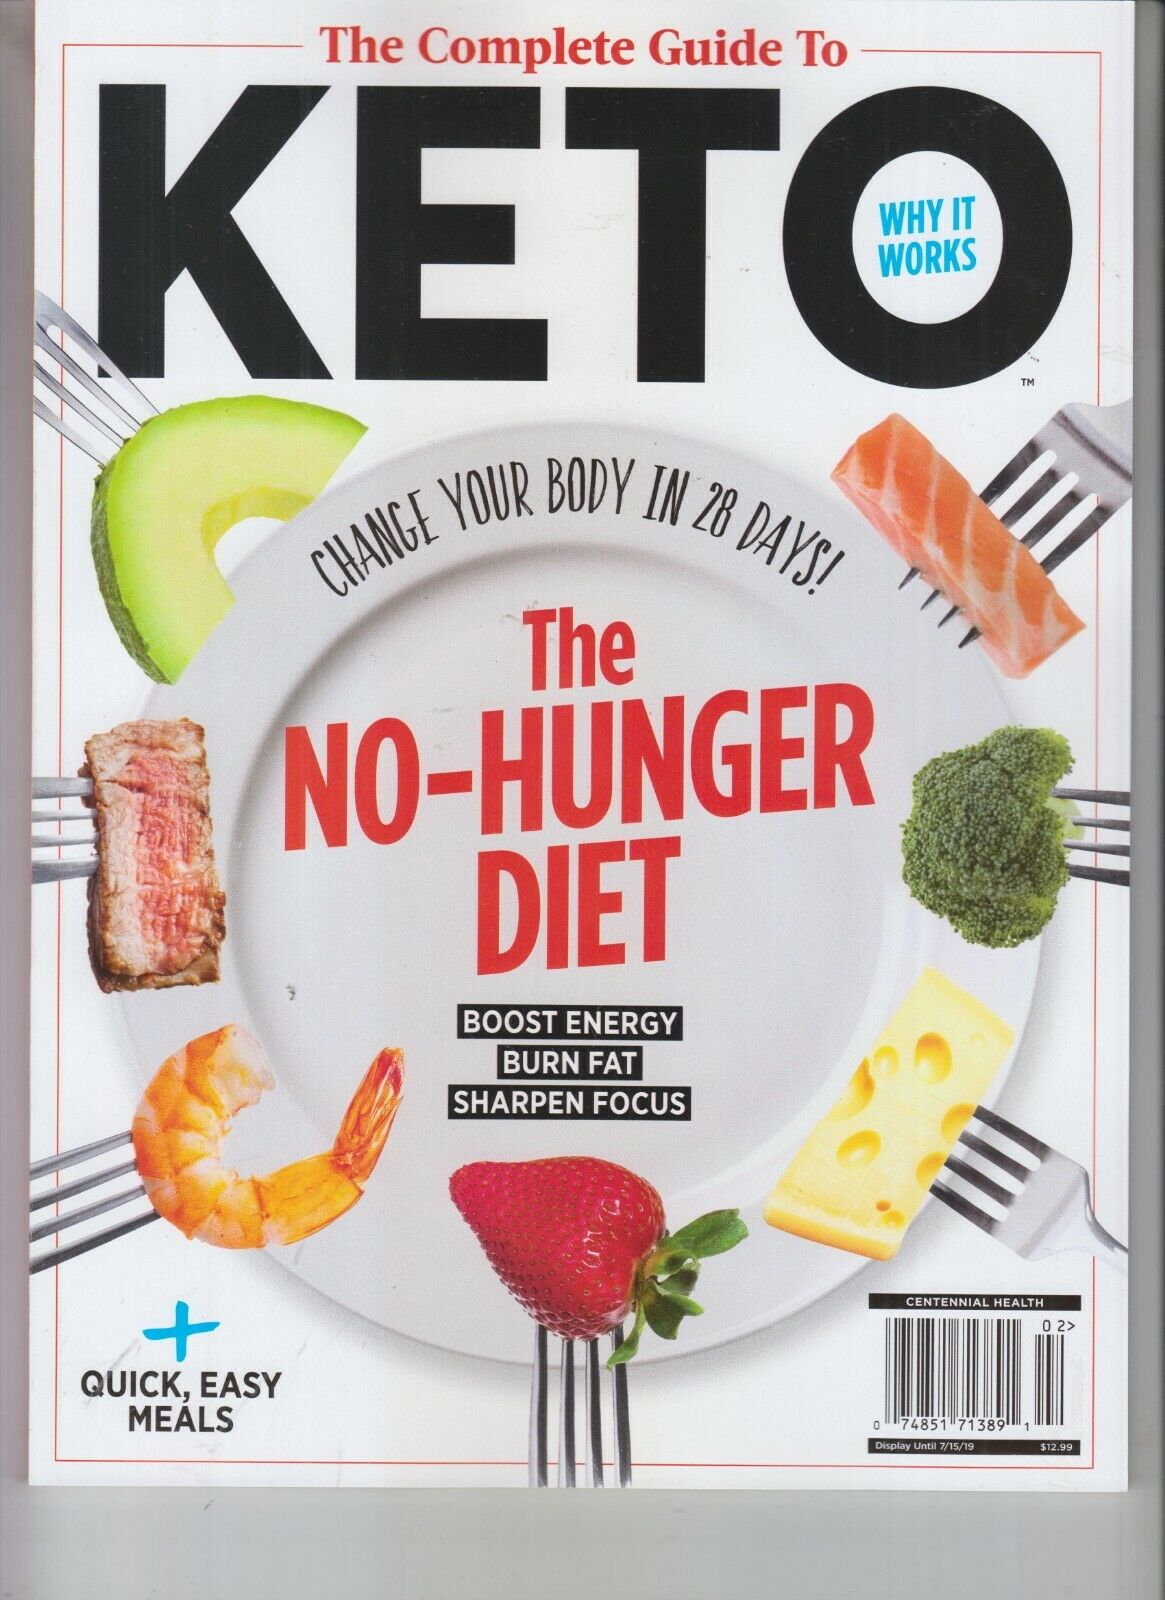 Complete Guide To Keto No Hunger Diet Centennial Health Magazine